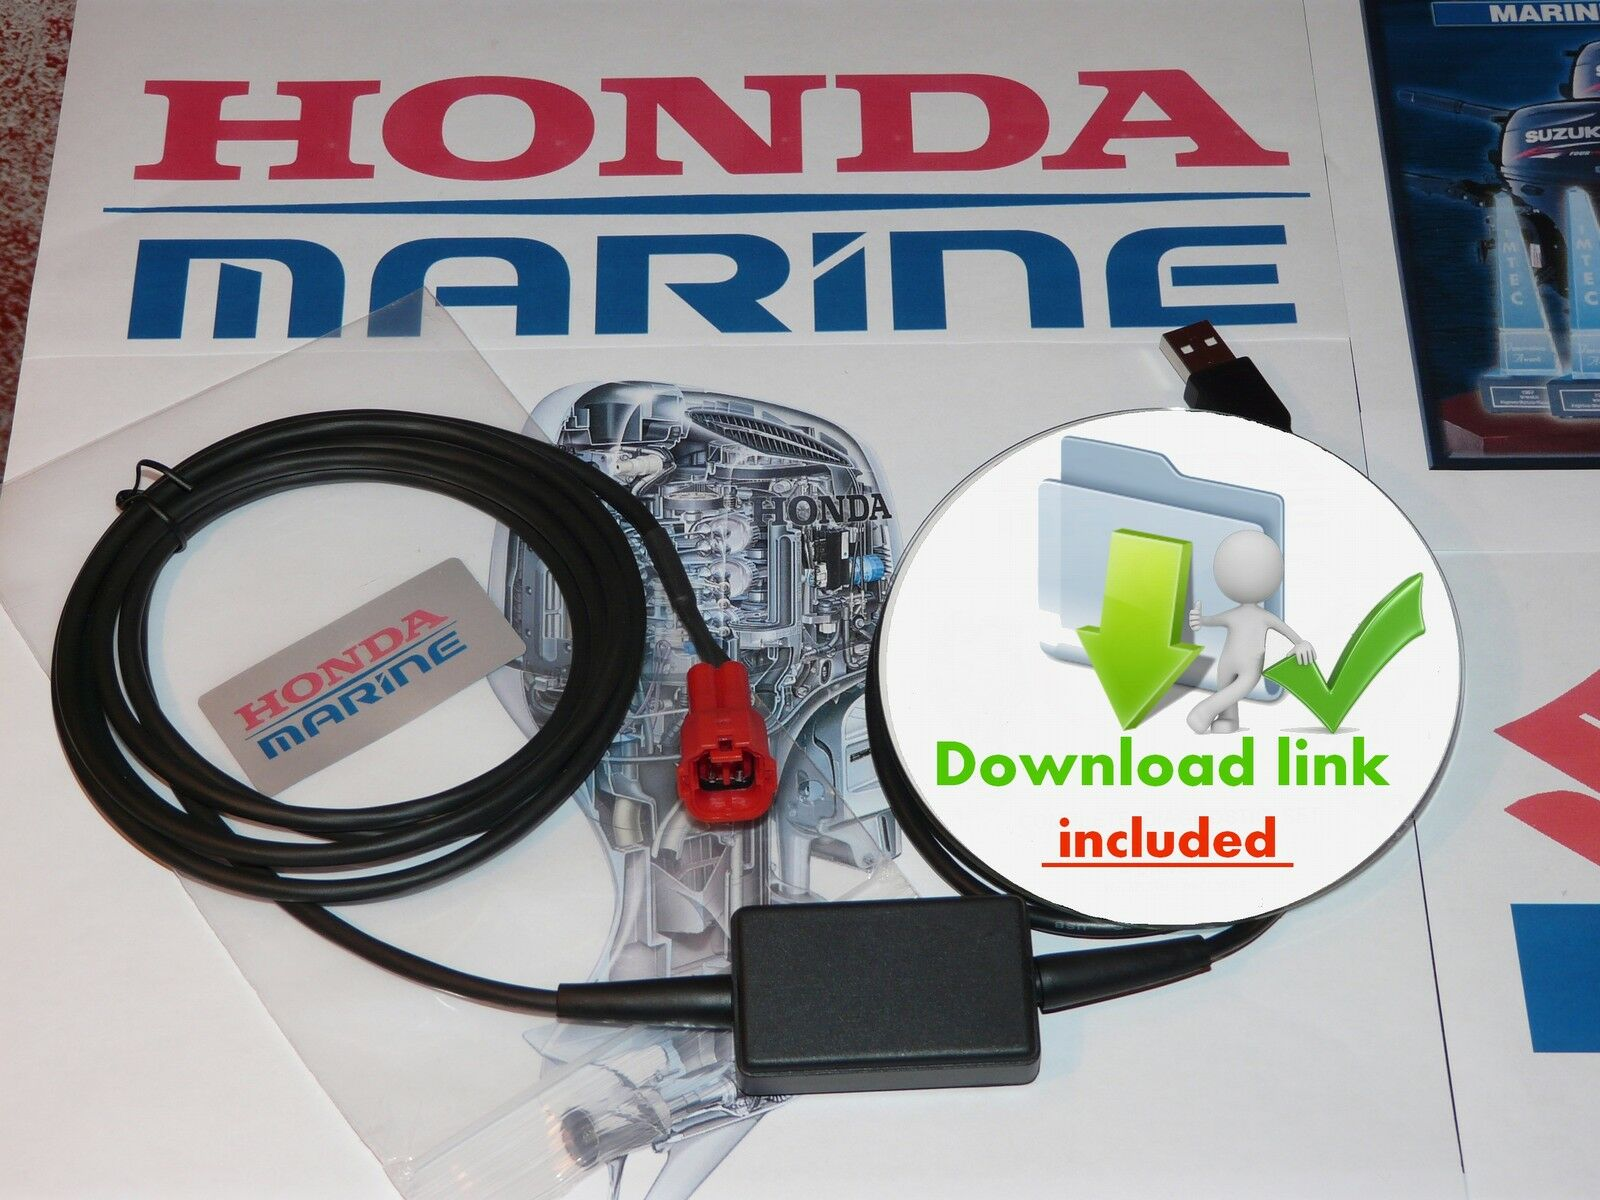 HONDA marine DIAGNOSTIC KIT with Software and Workshop manuals 1 of 11 ...